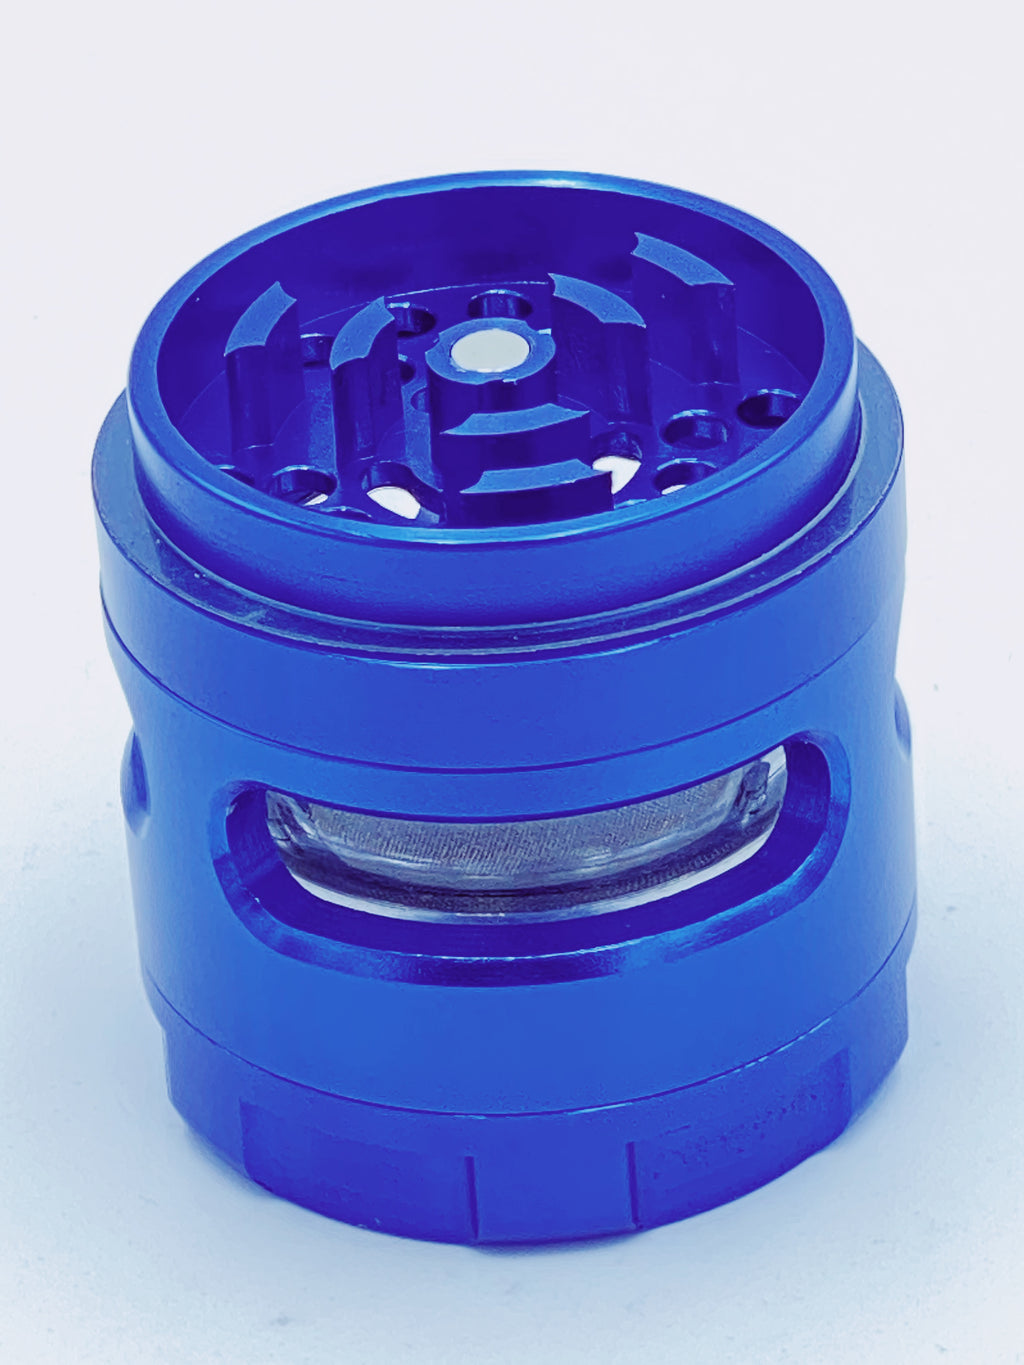 OG BLUE LARGE GLASS JAR GRINDER - Smoke Country - Land of the artistic glass blown bongs